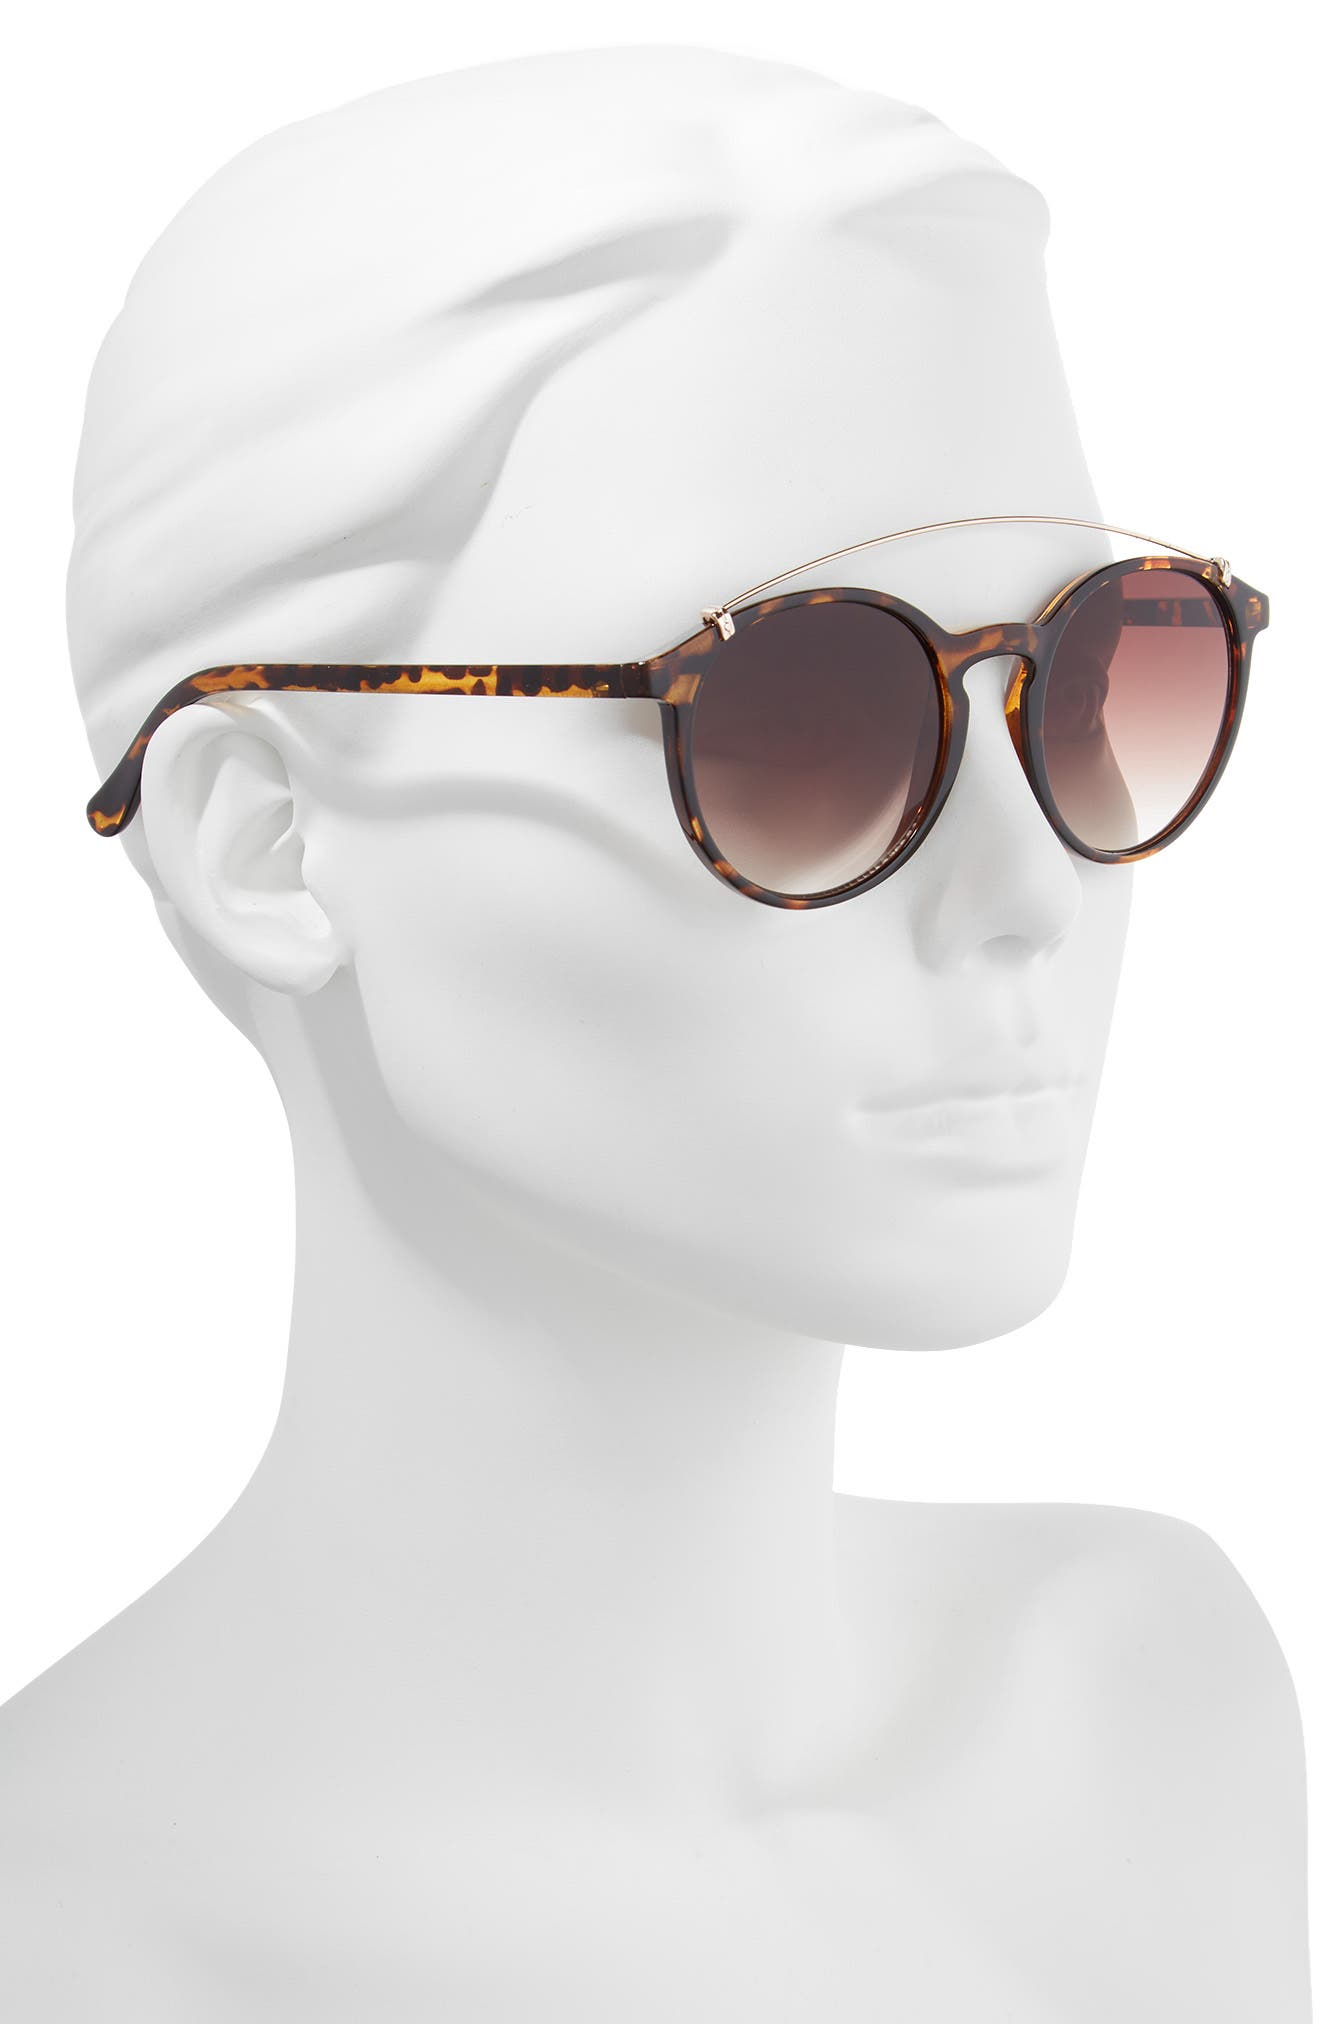 Round Aviator Sunglasses,                             Alternate thumbnail 2, color,                             Tort/ Brown